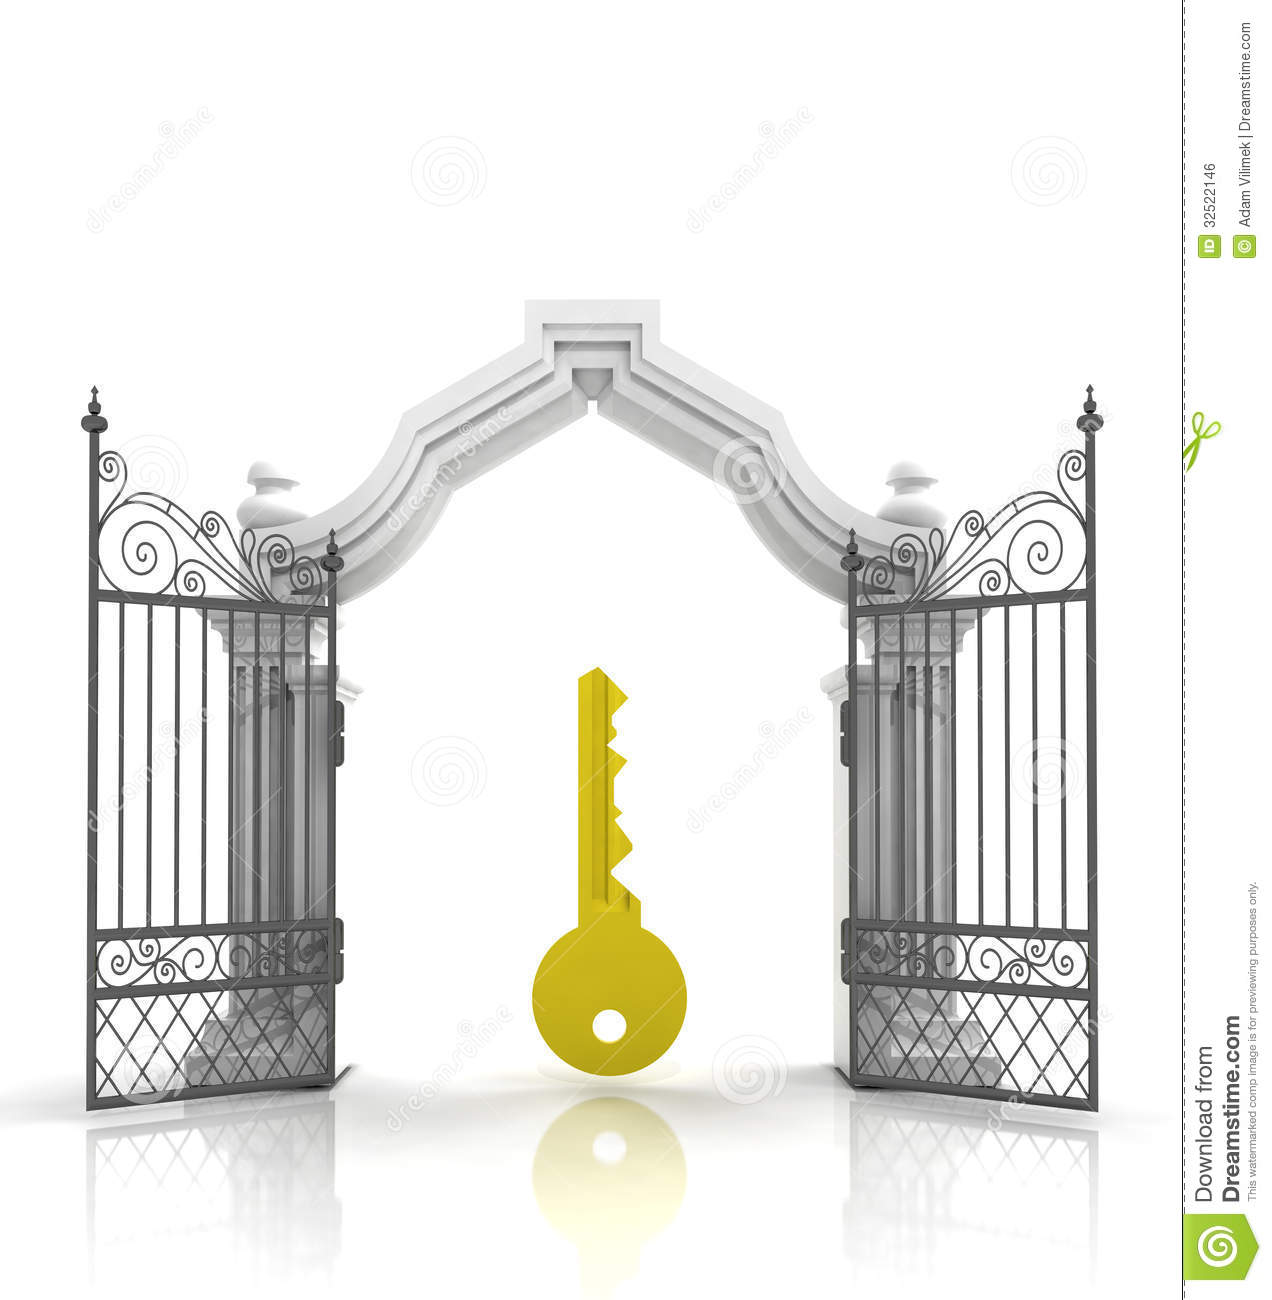 Heaven clipart gates opening Cps With Golden Open Free